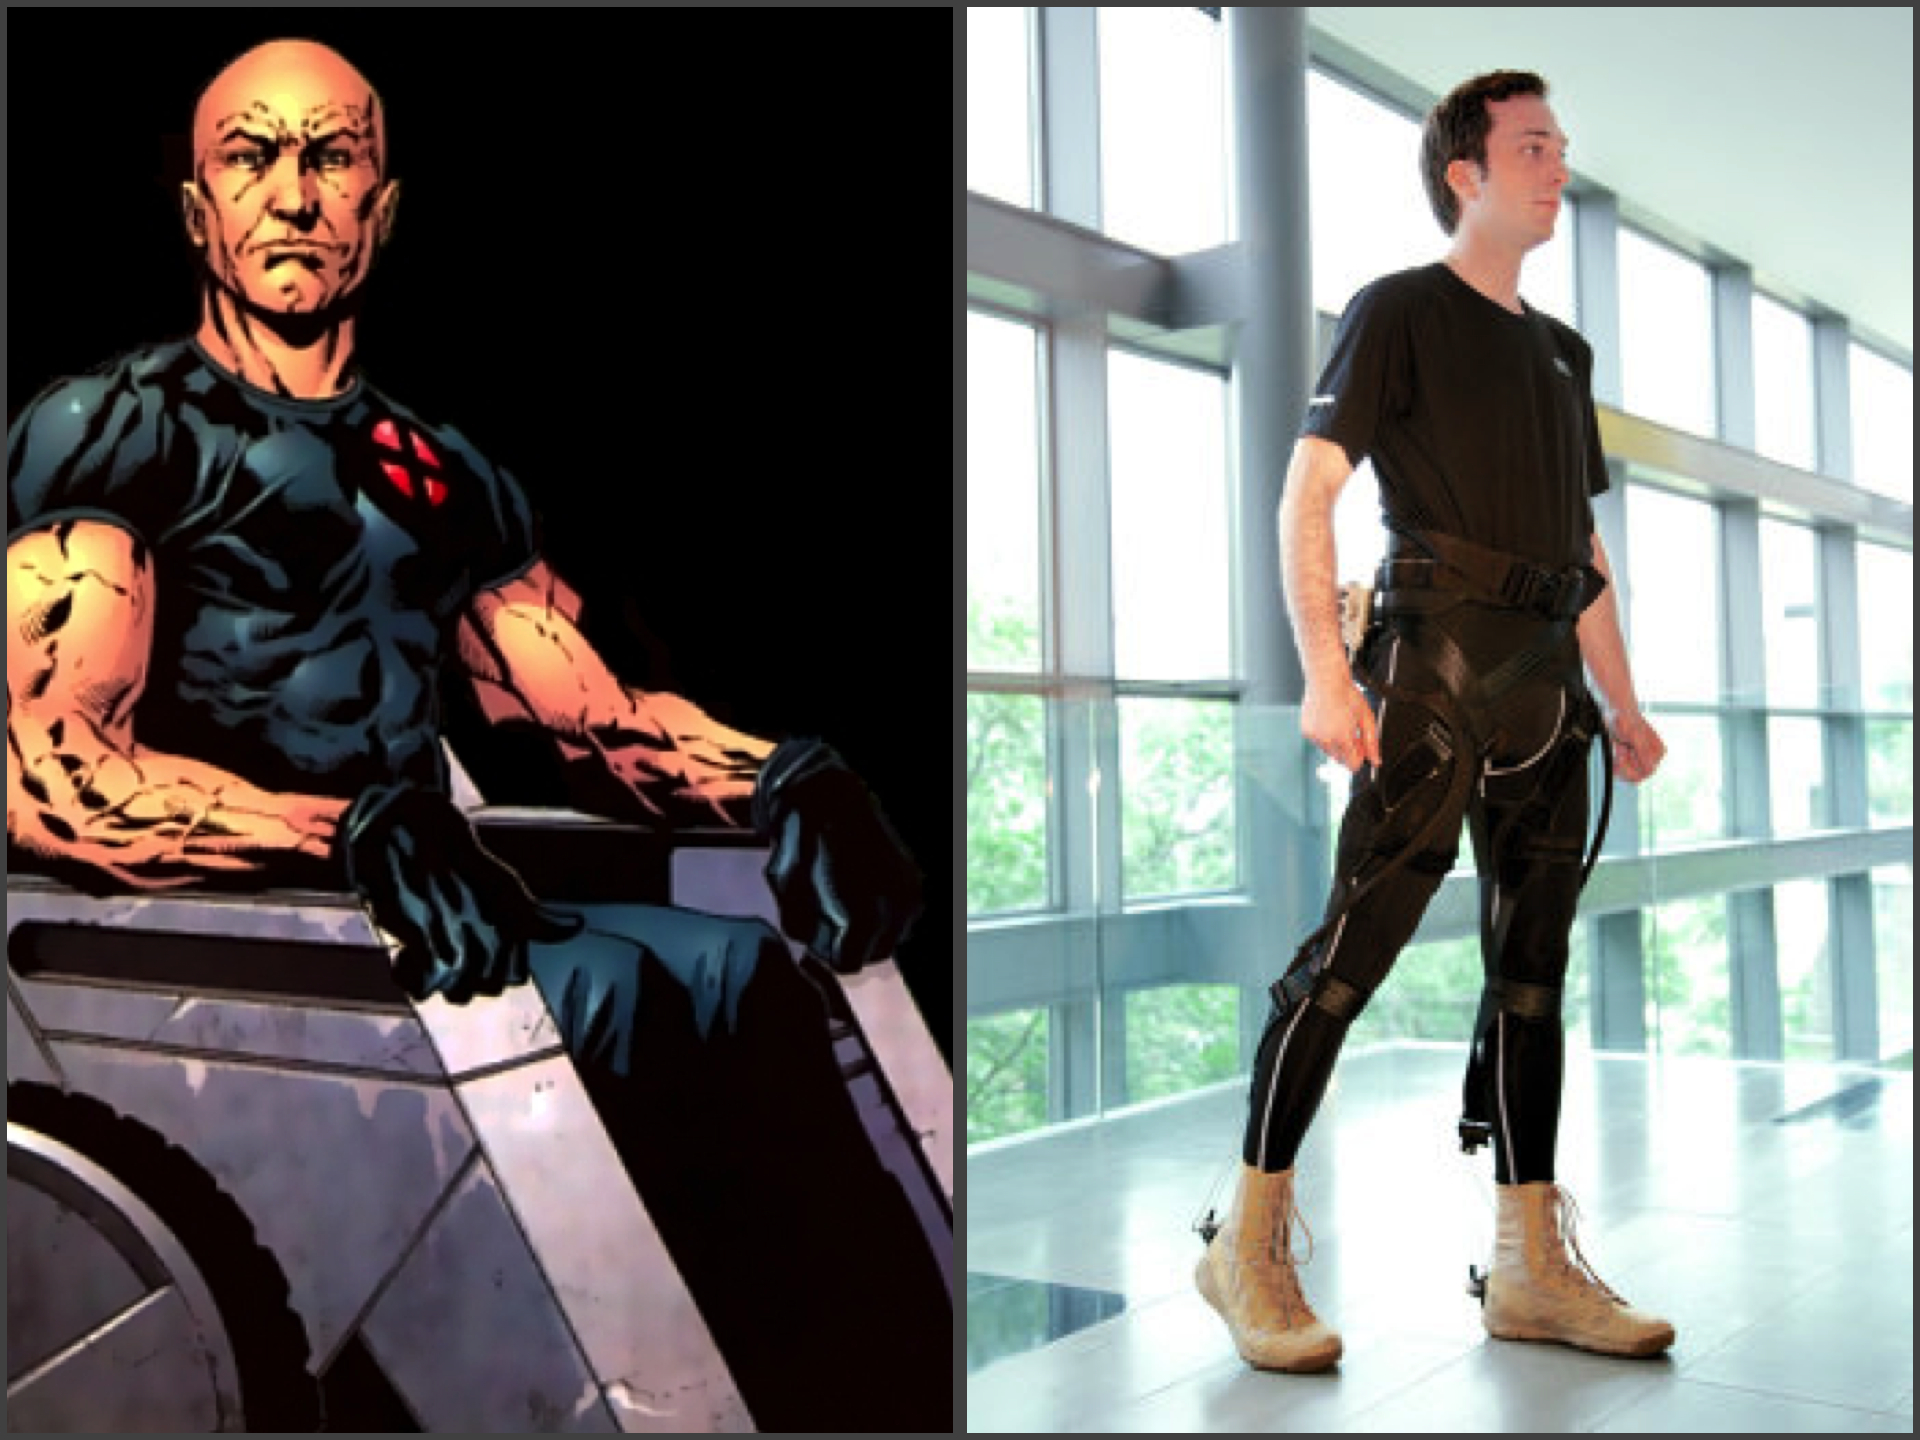 Professor X walks